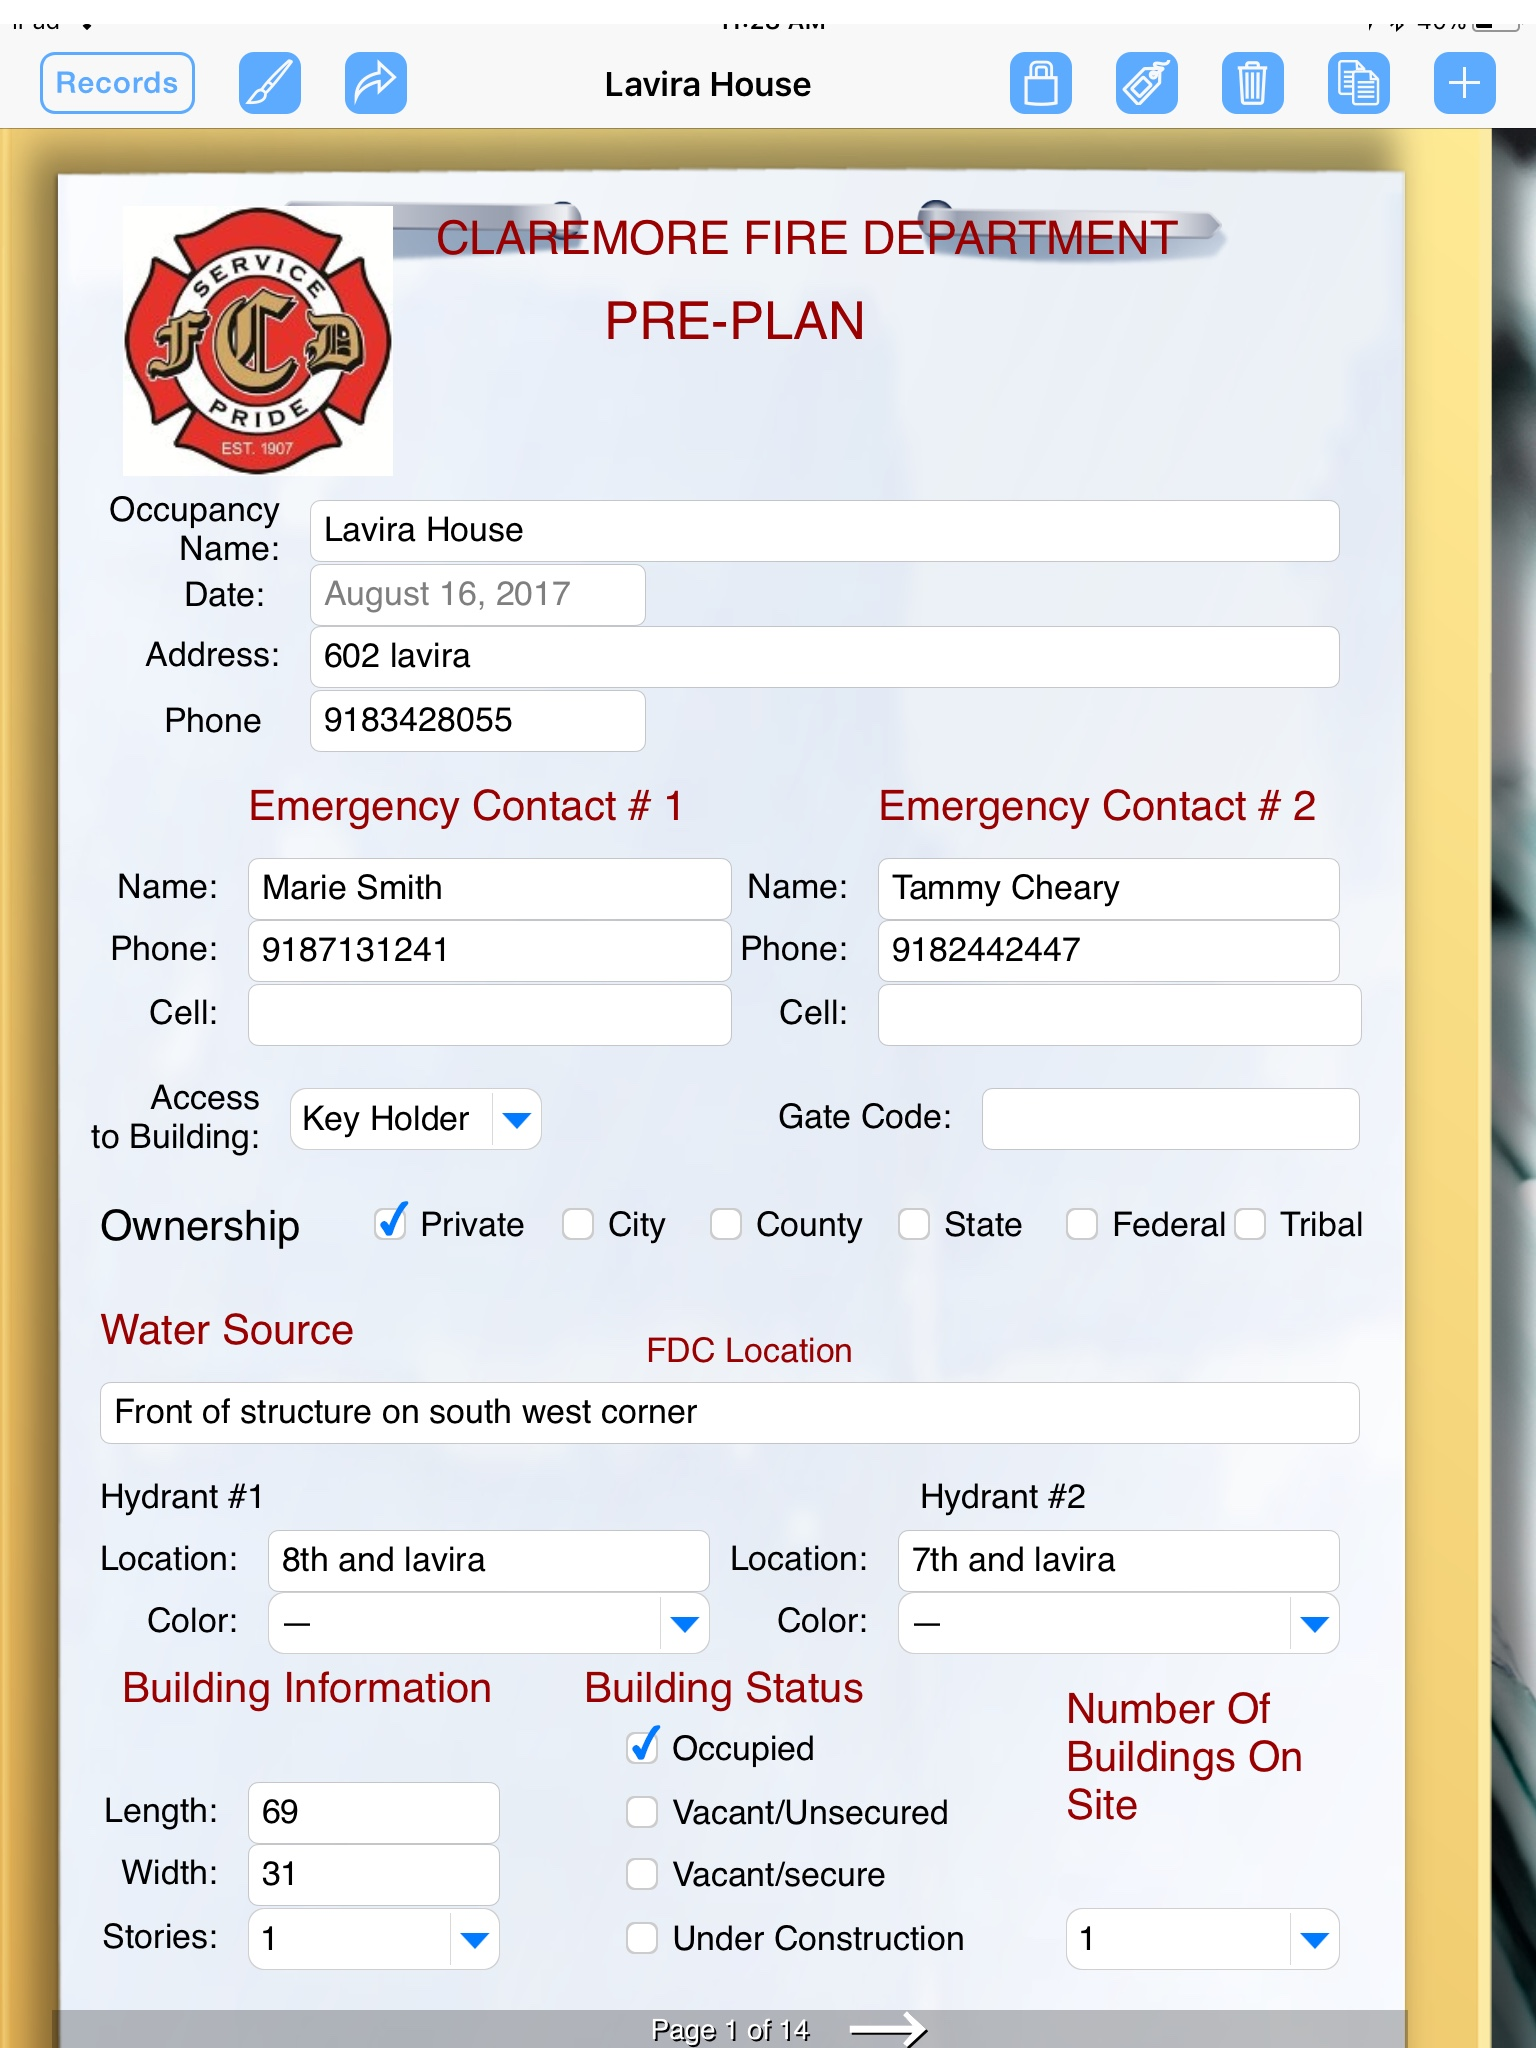 fire department uses formconnect app for emergency pre